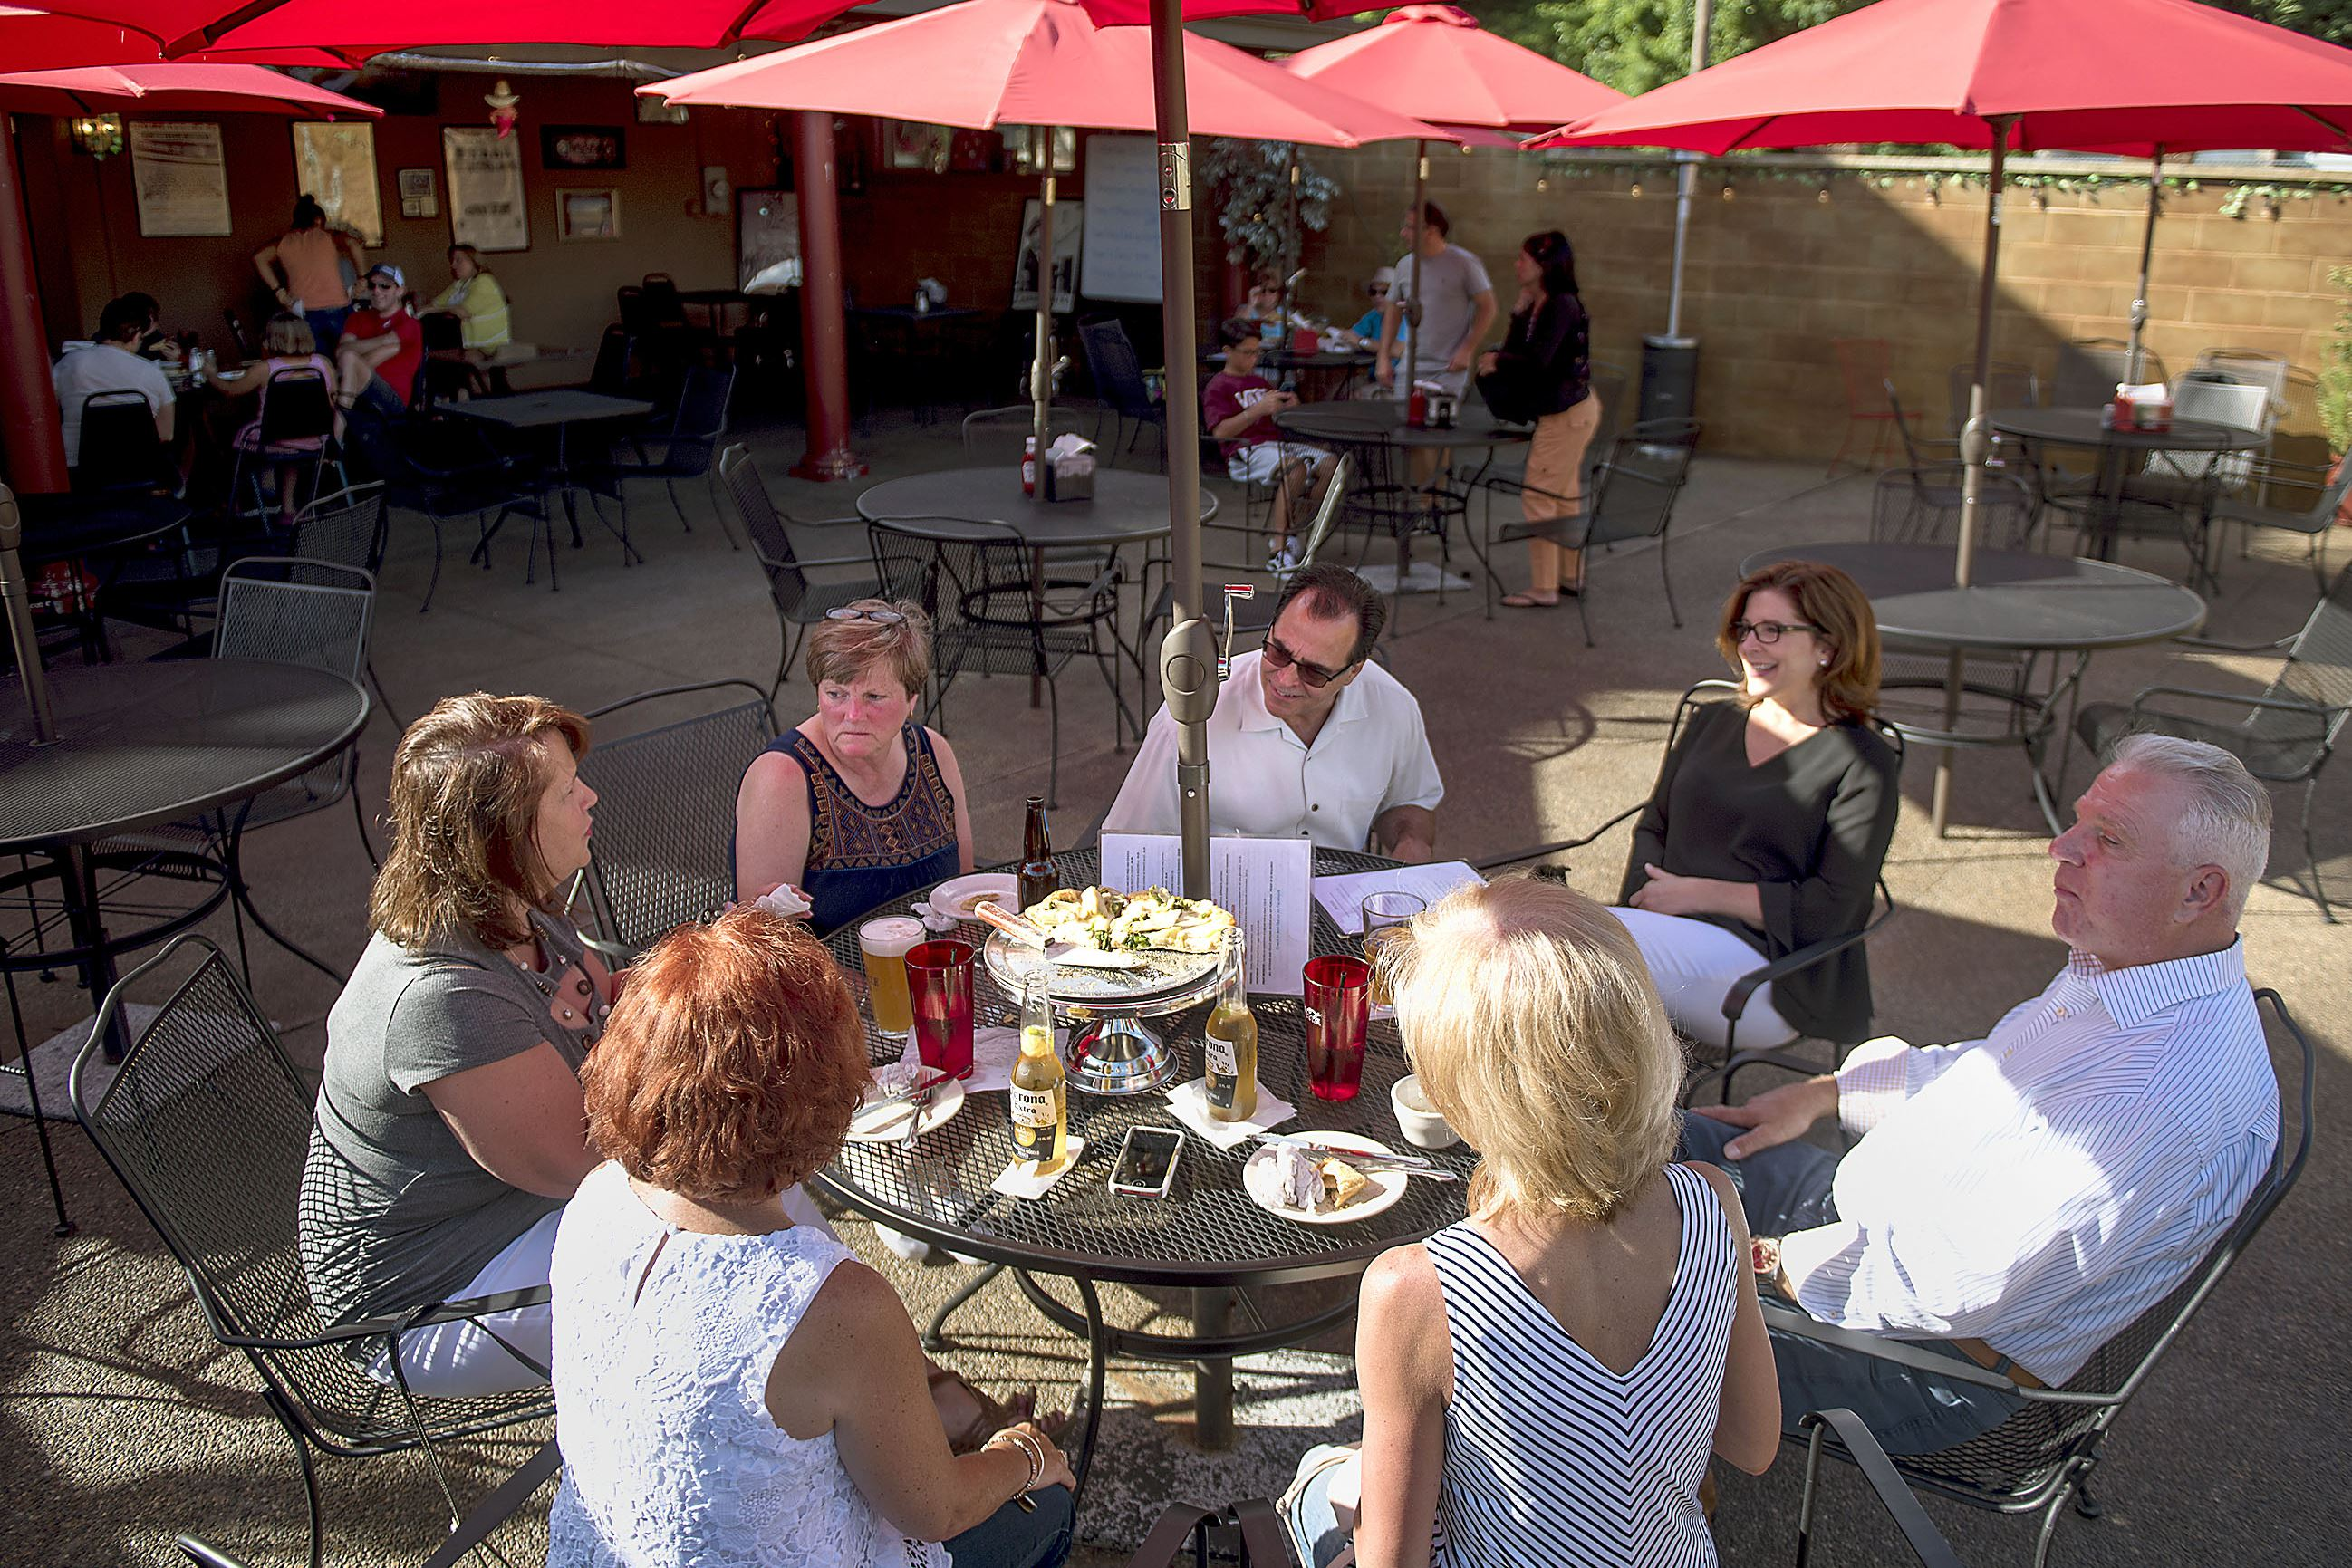 20170624hnOutDining-3-2 A group of St. Thomas High School graduates of 1977 have a reunion at Portogallo Peppers N'at on Saturday, June 24, 2017 in Braddock.